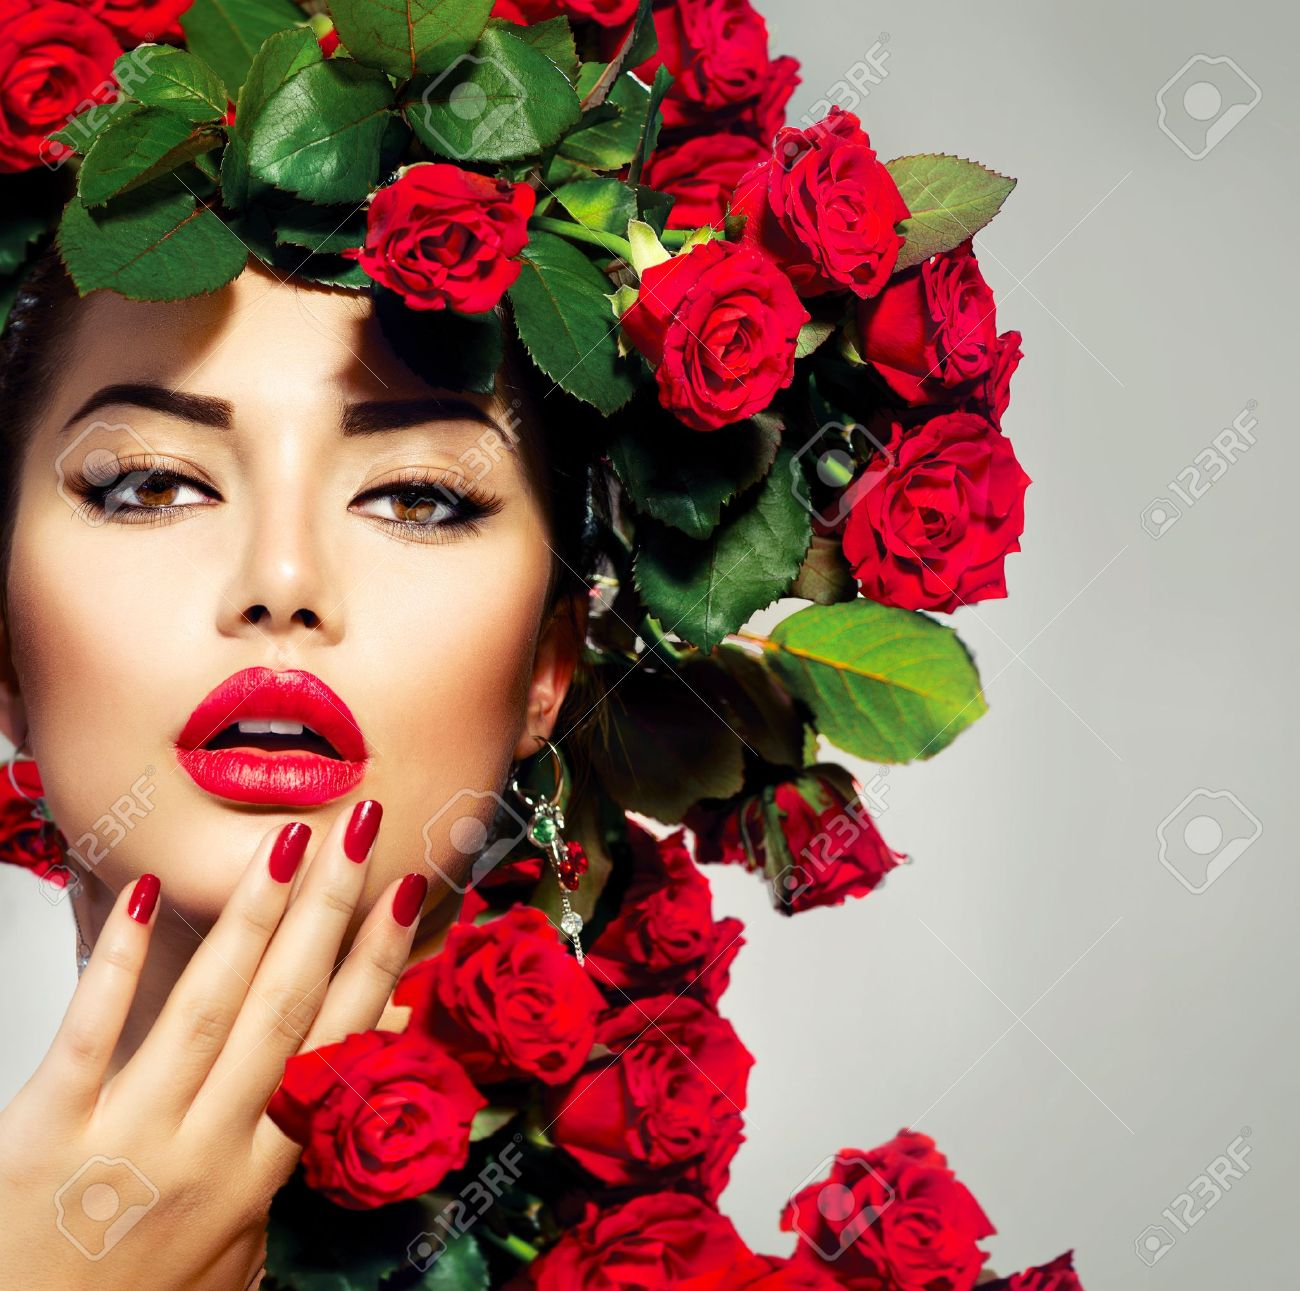 Beauty Fashion Model Girl Portrait with Red Roses Hairstyle Stock Photo - 20793584